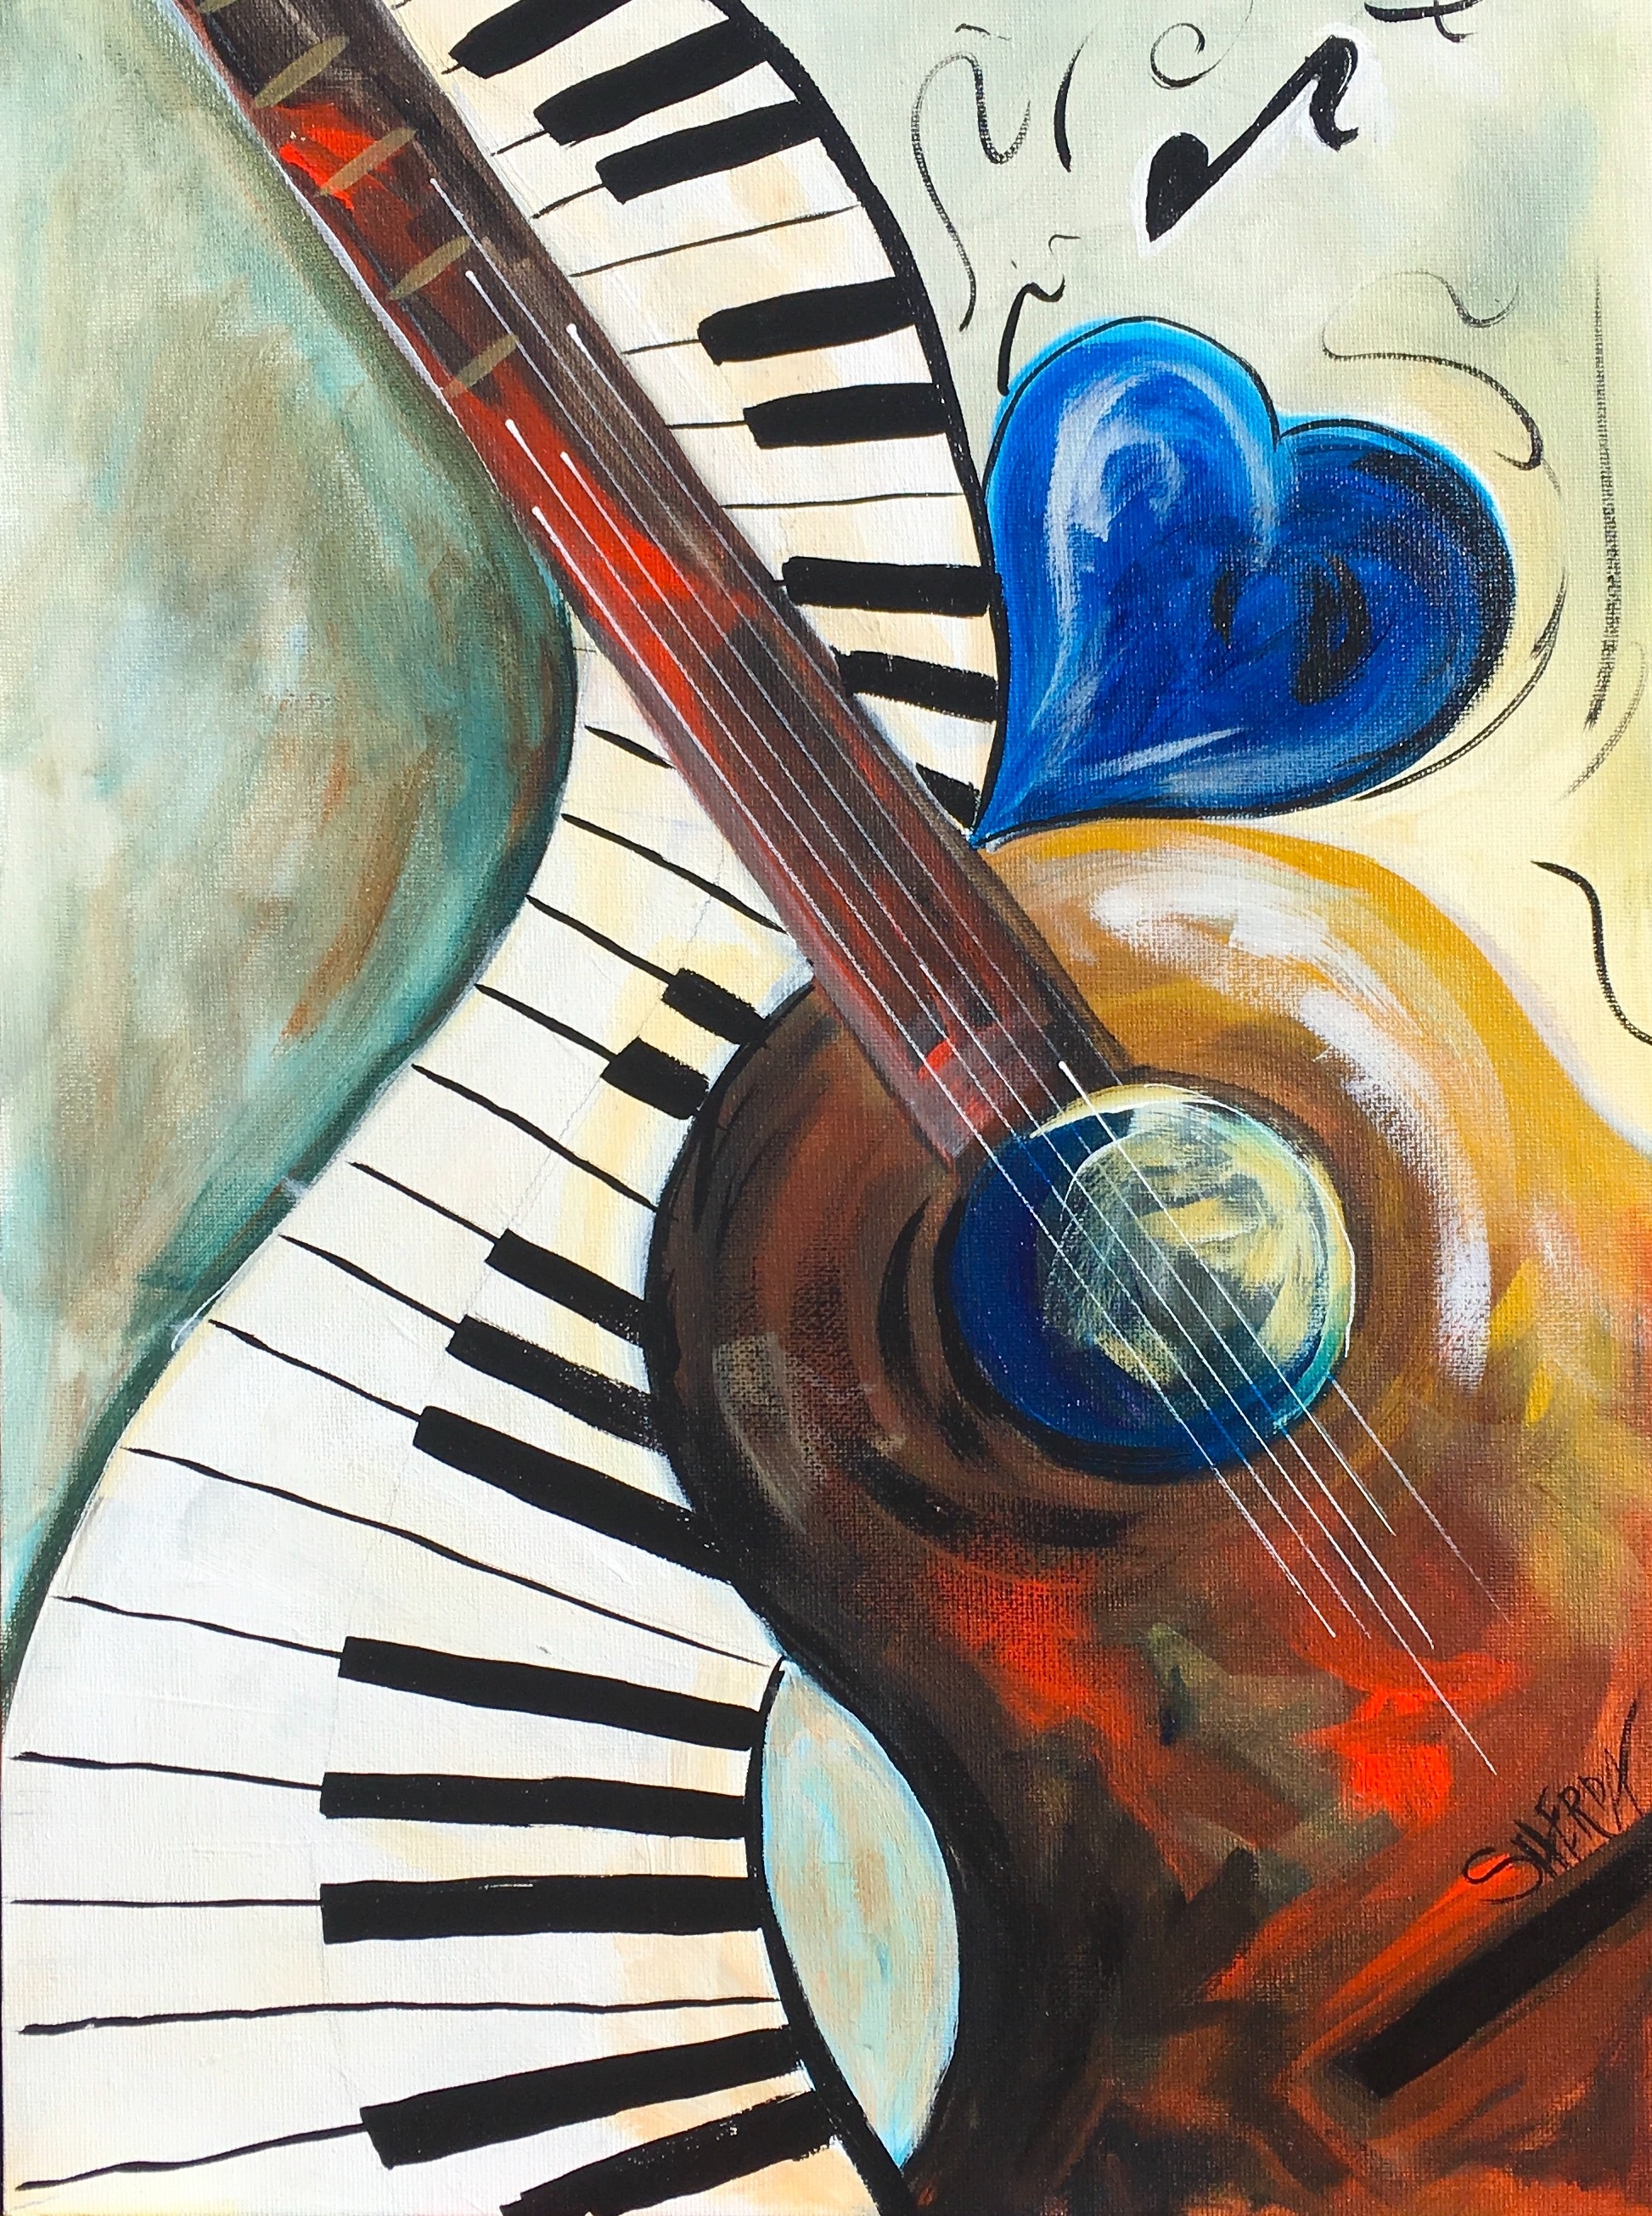 Abstract Music Acrylic Painting On Canvas With Heart Guitar And With Newest Abstract Musical Notes Piano Jazz Wall Artwork (View 2 of 20)